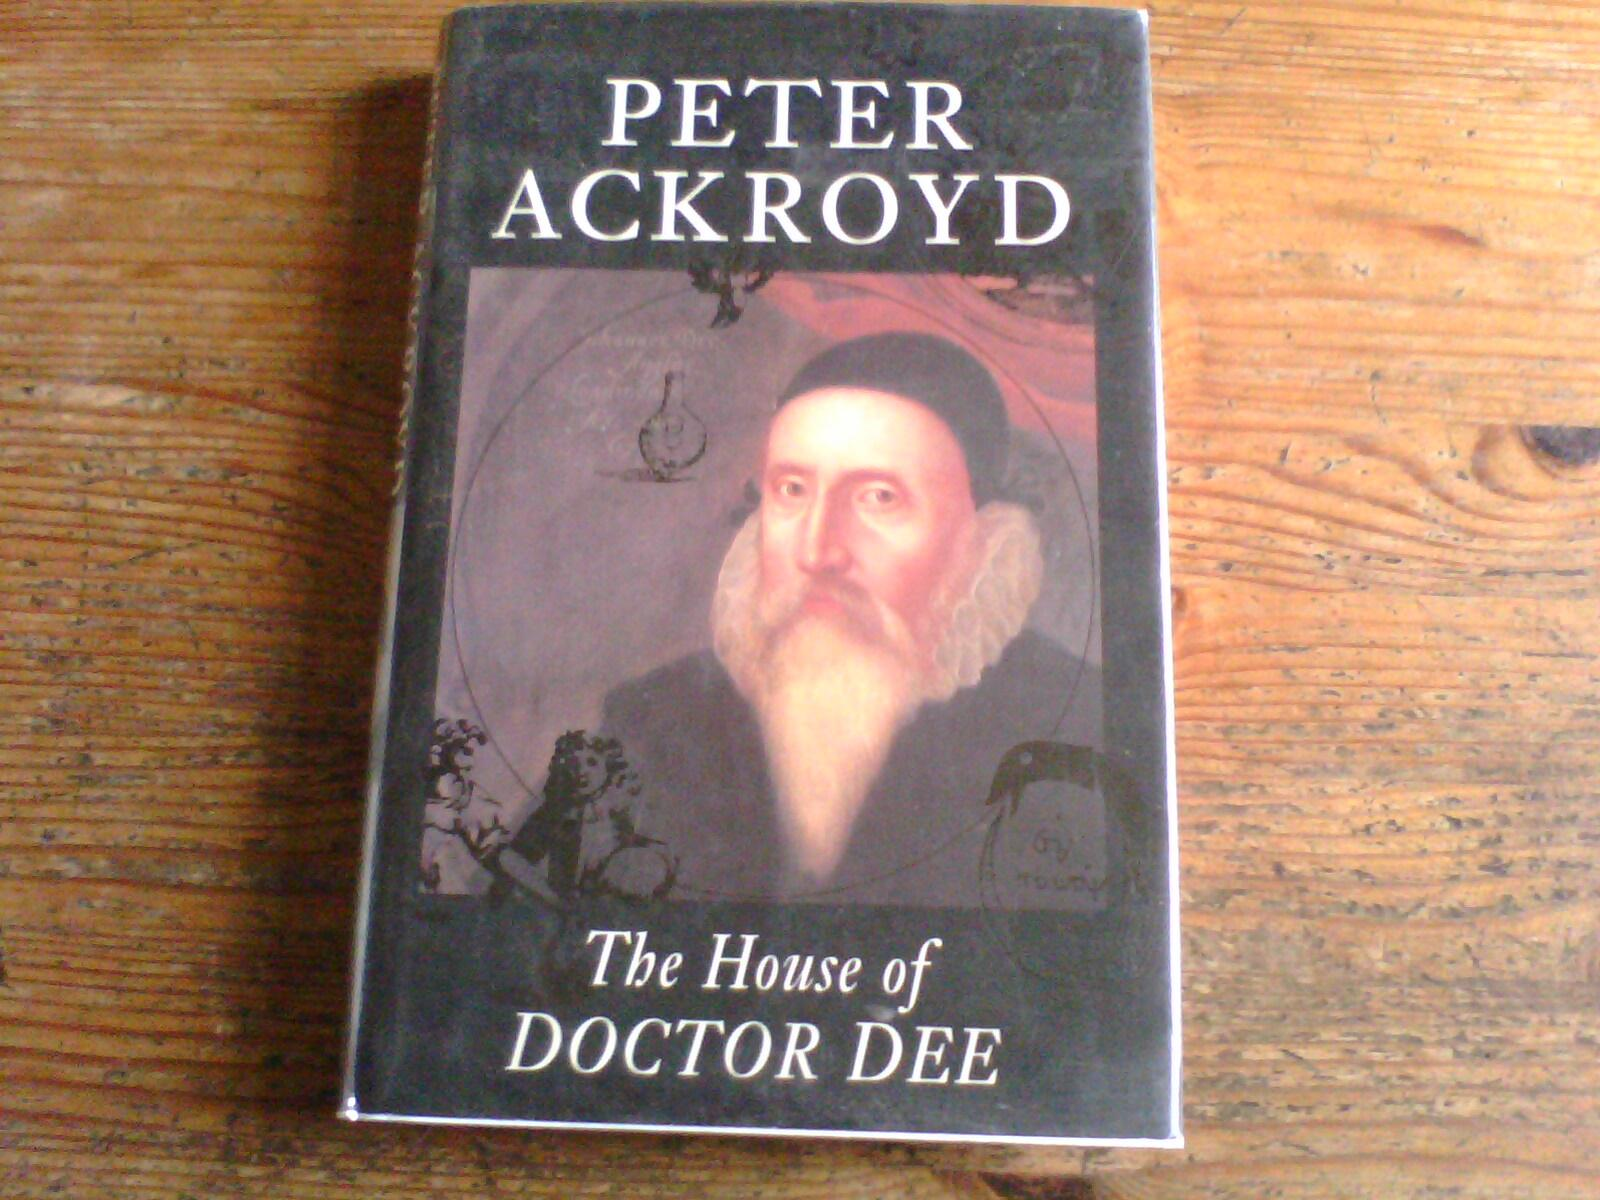 The House of Doctor Dee